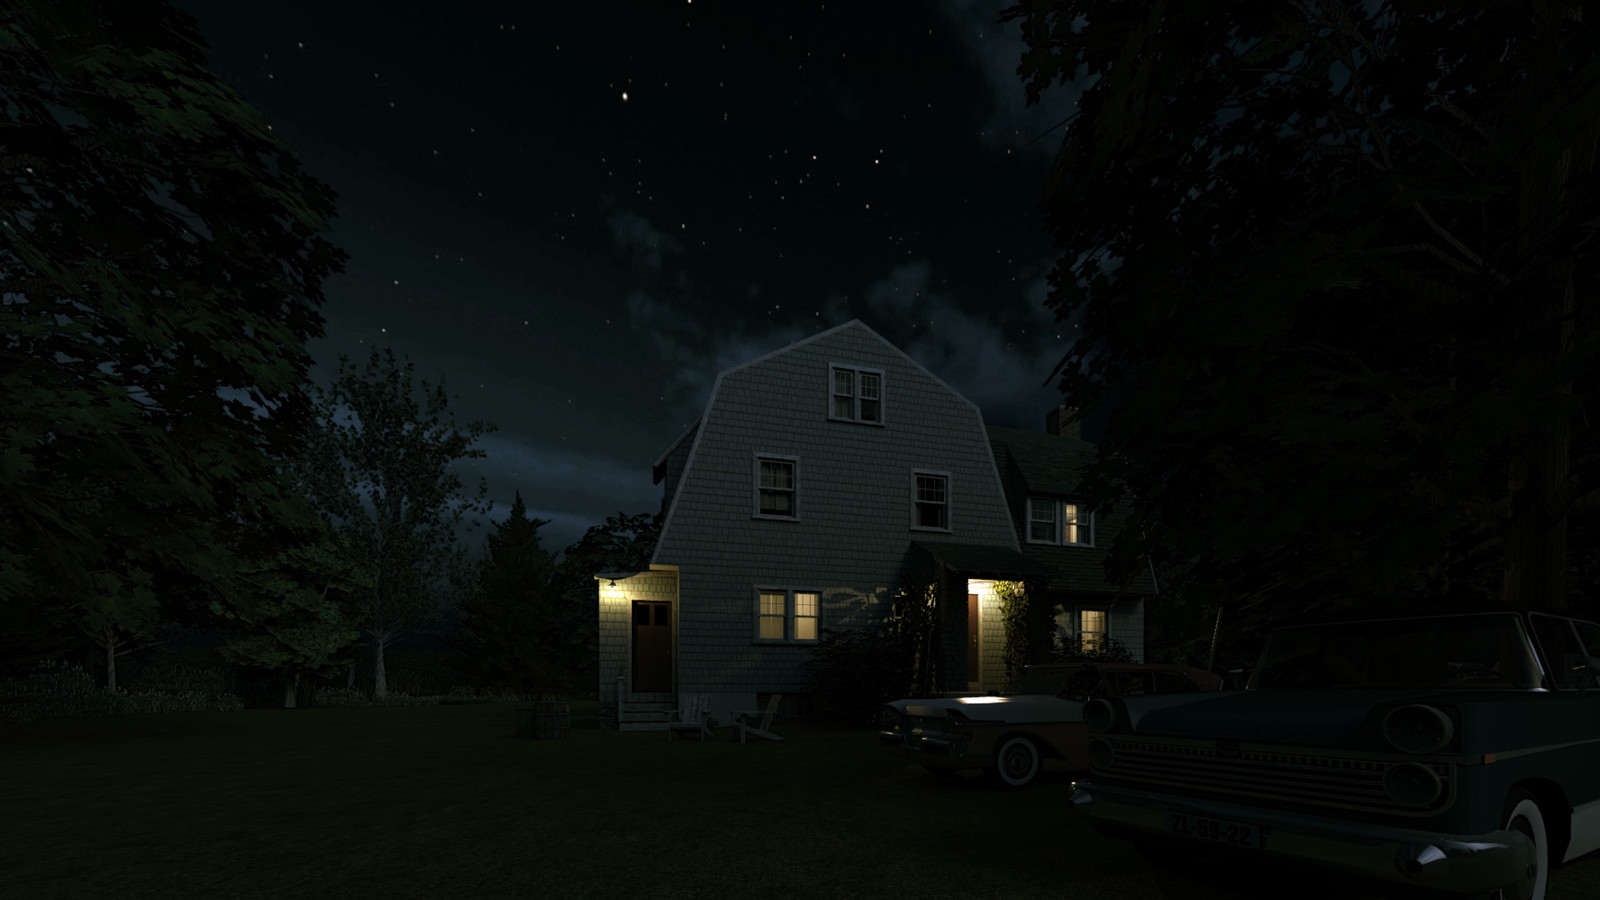 """""""Mason Farm - Come Raggio di Luna"""" Full Moon Collection  33 Masonfarm HD1080 25 - iP Kodac  """"SketchUp to LayOut"""" The Mason Farm Renders for the launching of the new book """"SketchUp to LayOut"""" http://bit.ly/2j0d0Wh by MasterSketchup."""